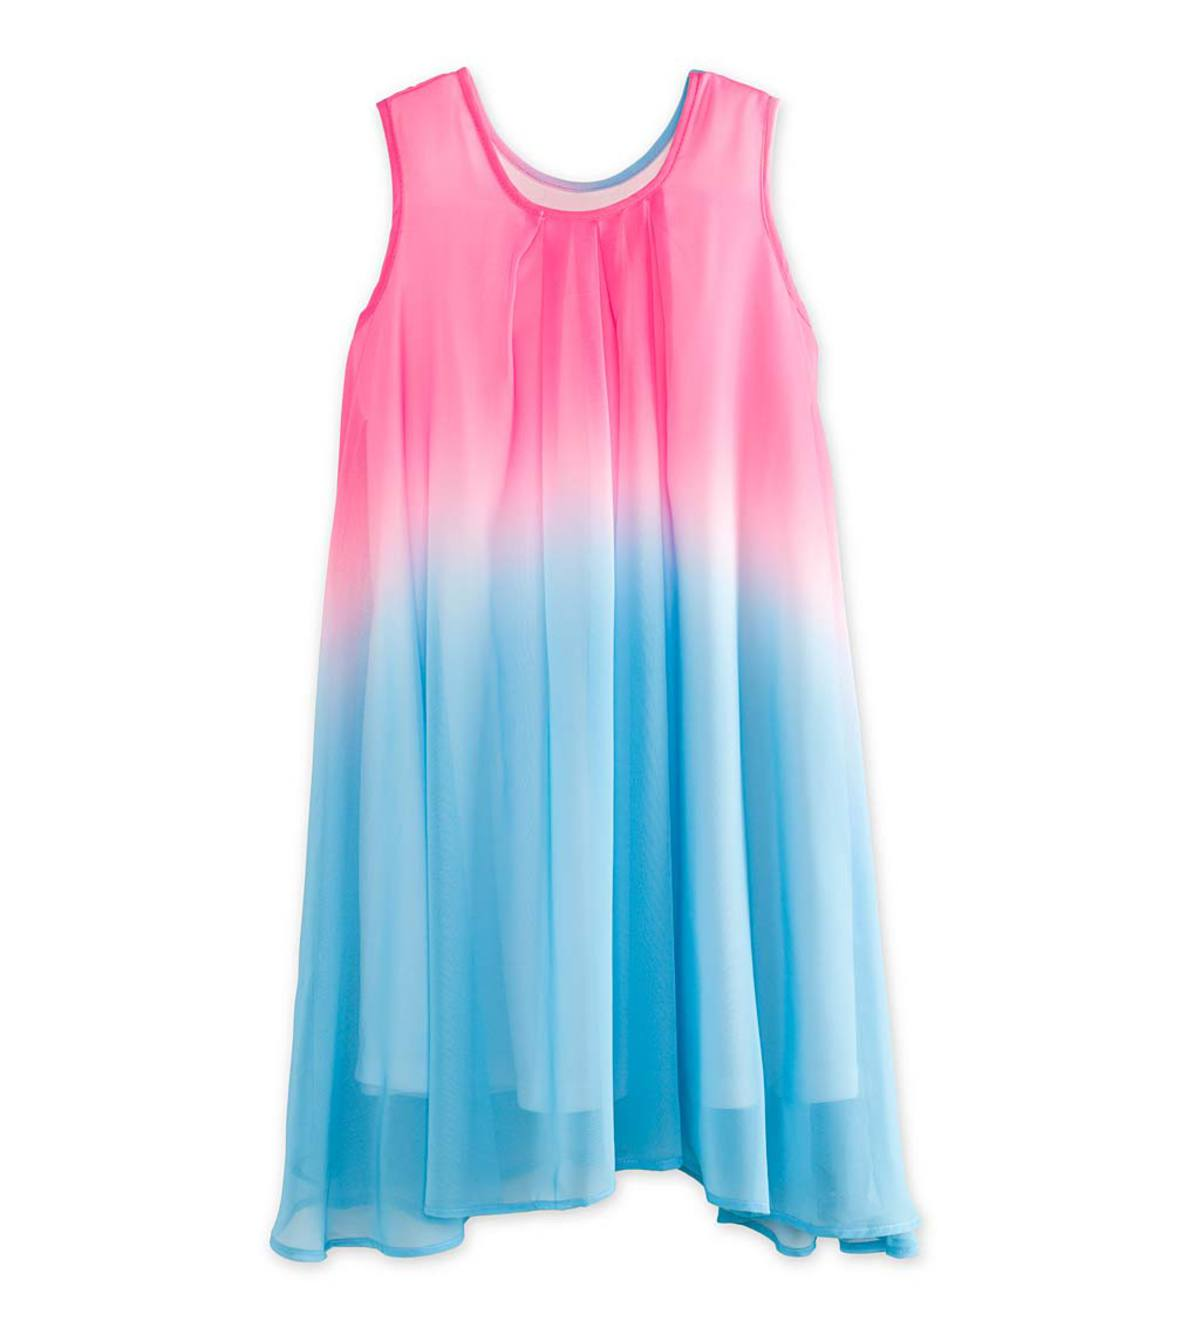 Ombre Swing Dress - Pink - /12